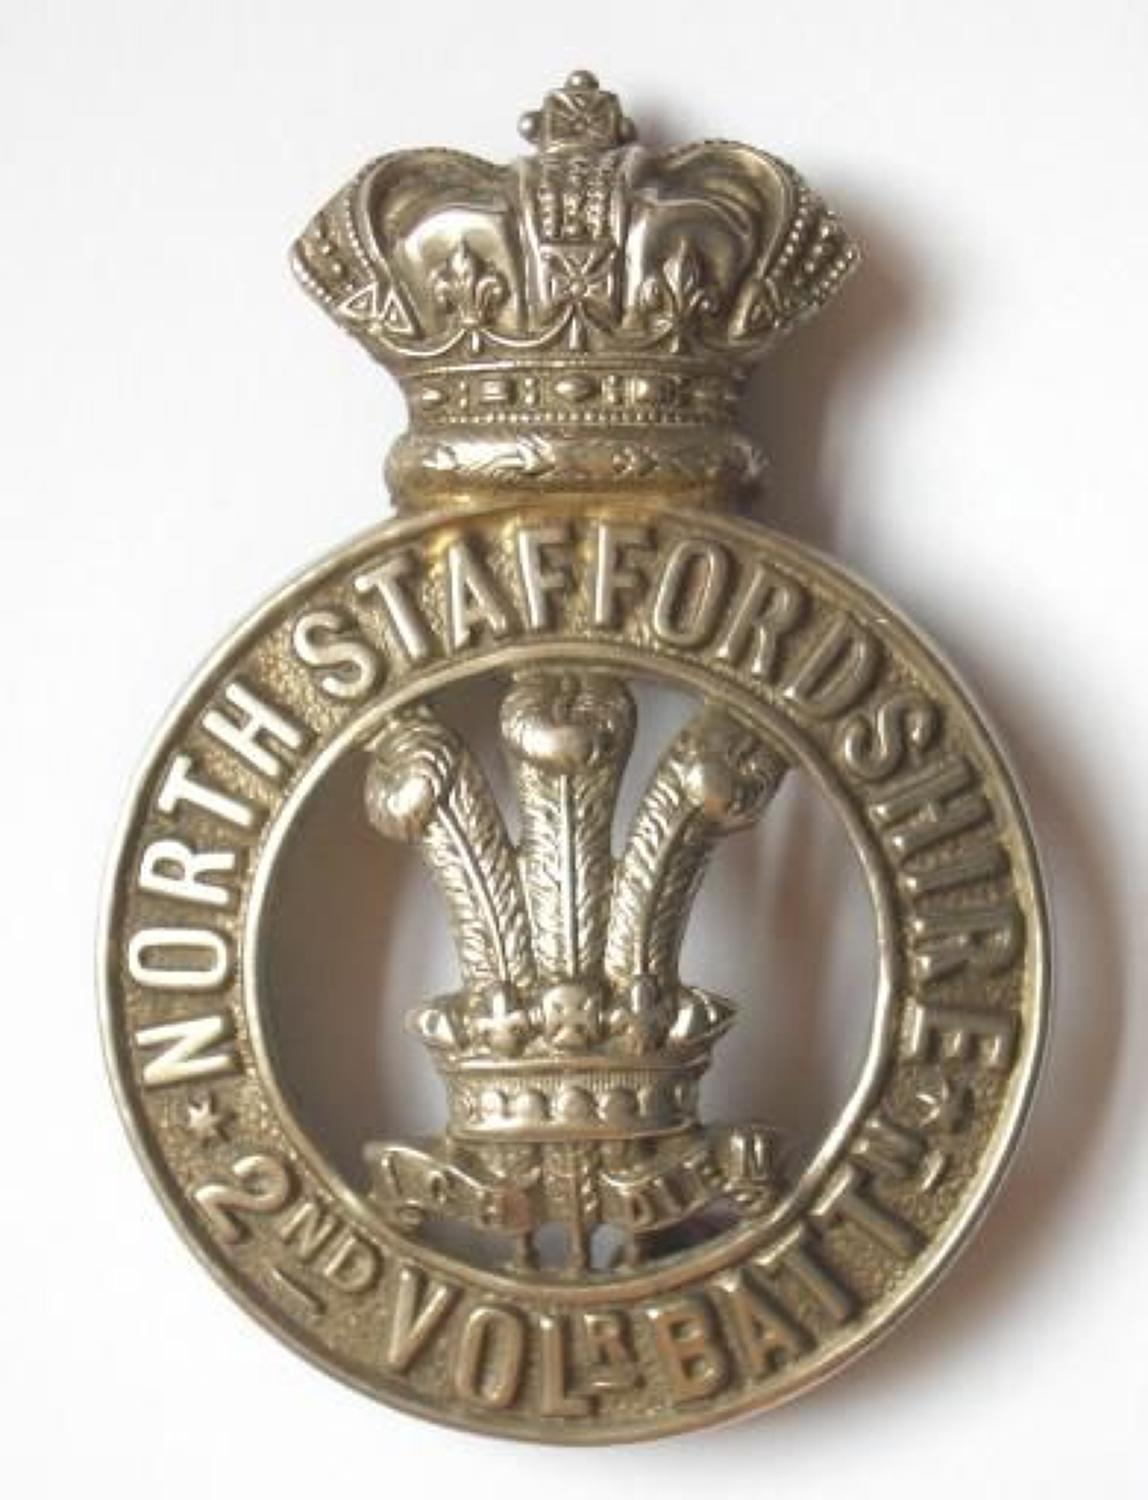 2nd VB North Staffordshire Regiment Victorian OR's glengarry badge